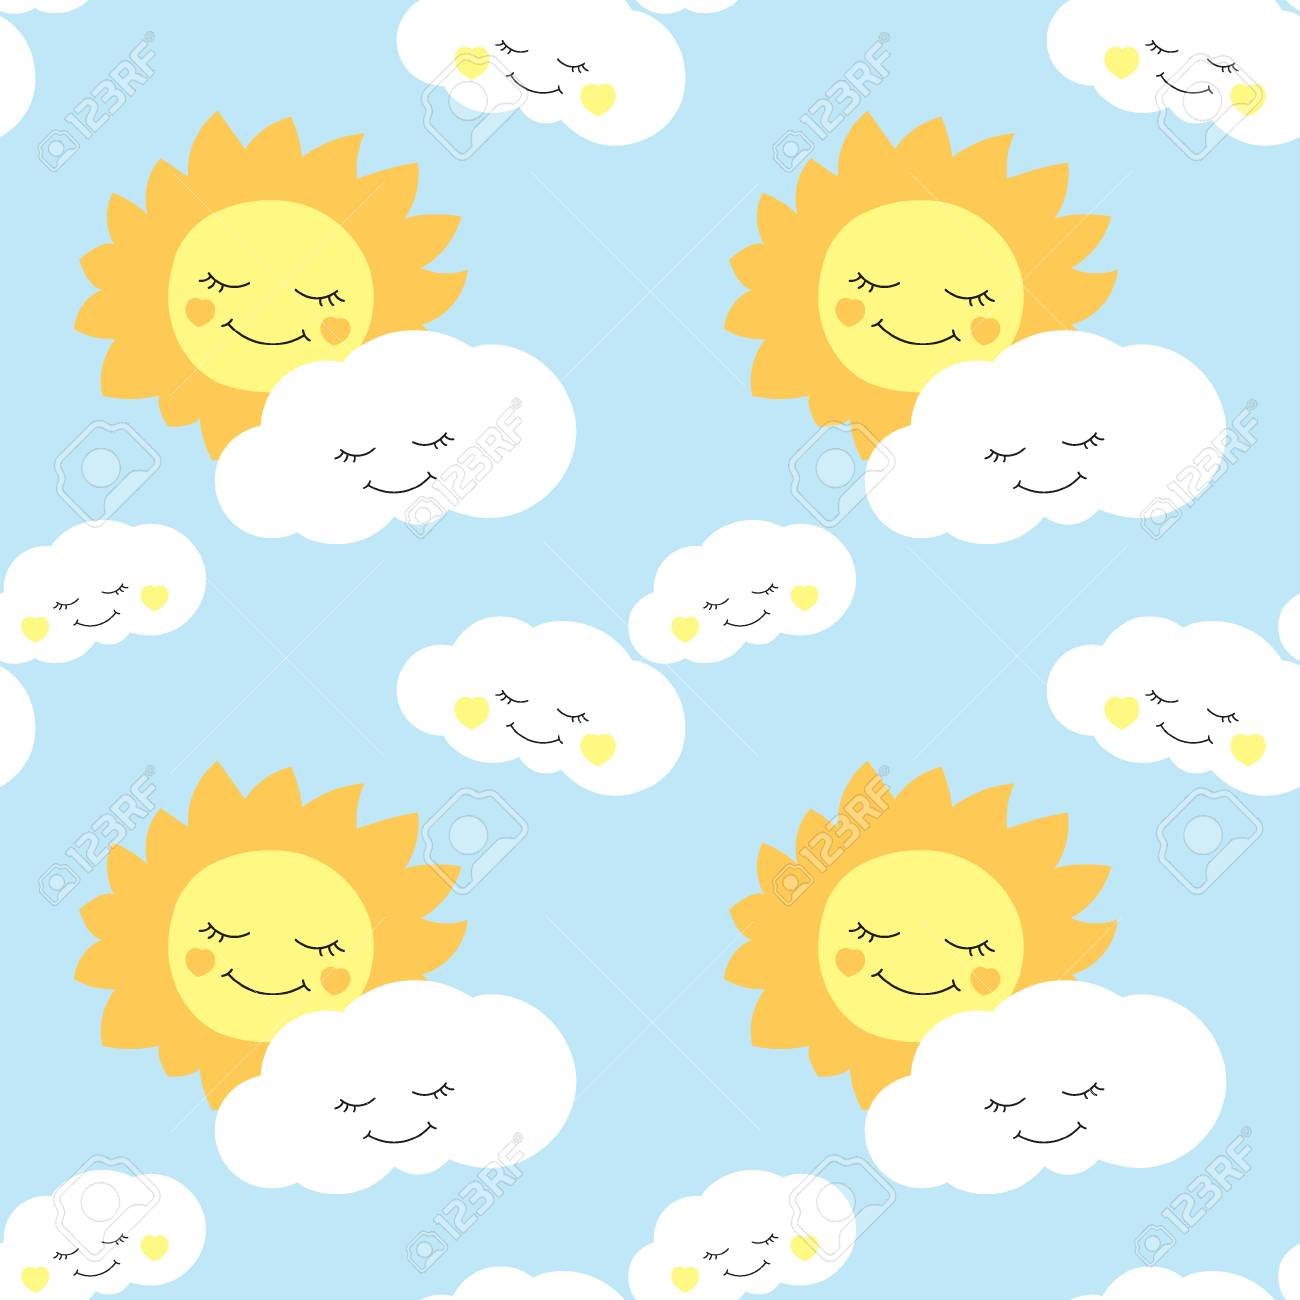 baby birthday wallpaper ; 84776624-cute-baby-sun-pattern-vector-seamless-background-design-for-children-birthday-card-wallpaper-or-fabr